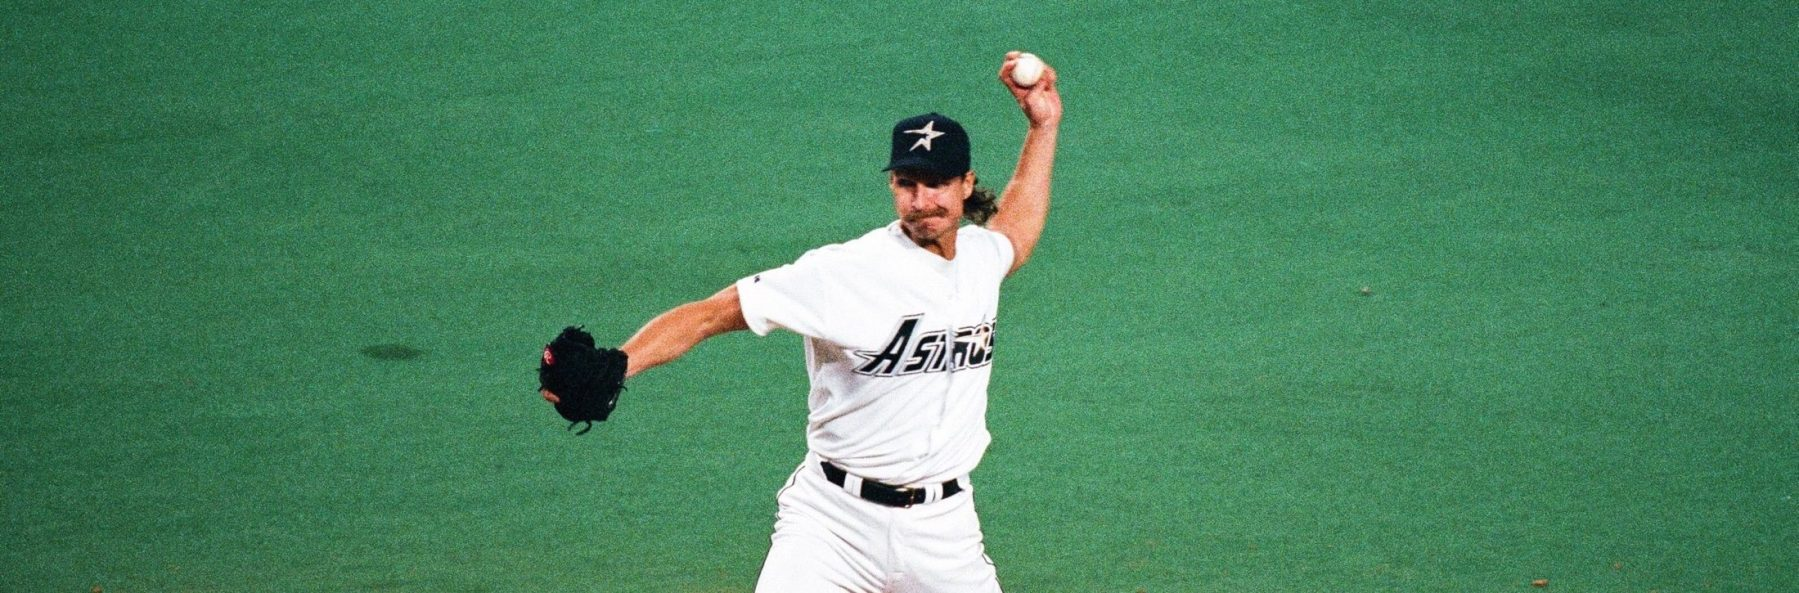 Randy Johnson of the Houston Astros during the game against the Philadelphia Phillies on August 7, 1998 at the Astrodome in Houston, Texas. (Photo by Sporting News via Getty Images)